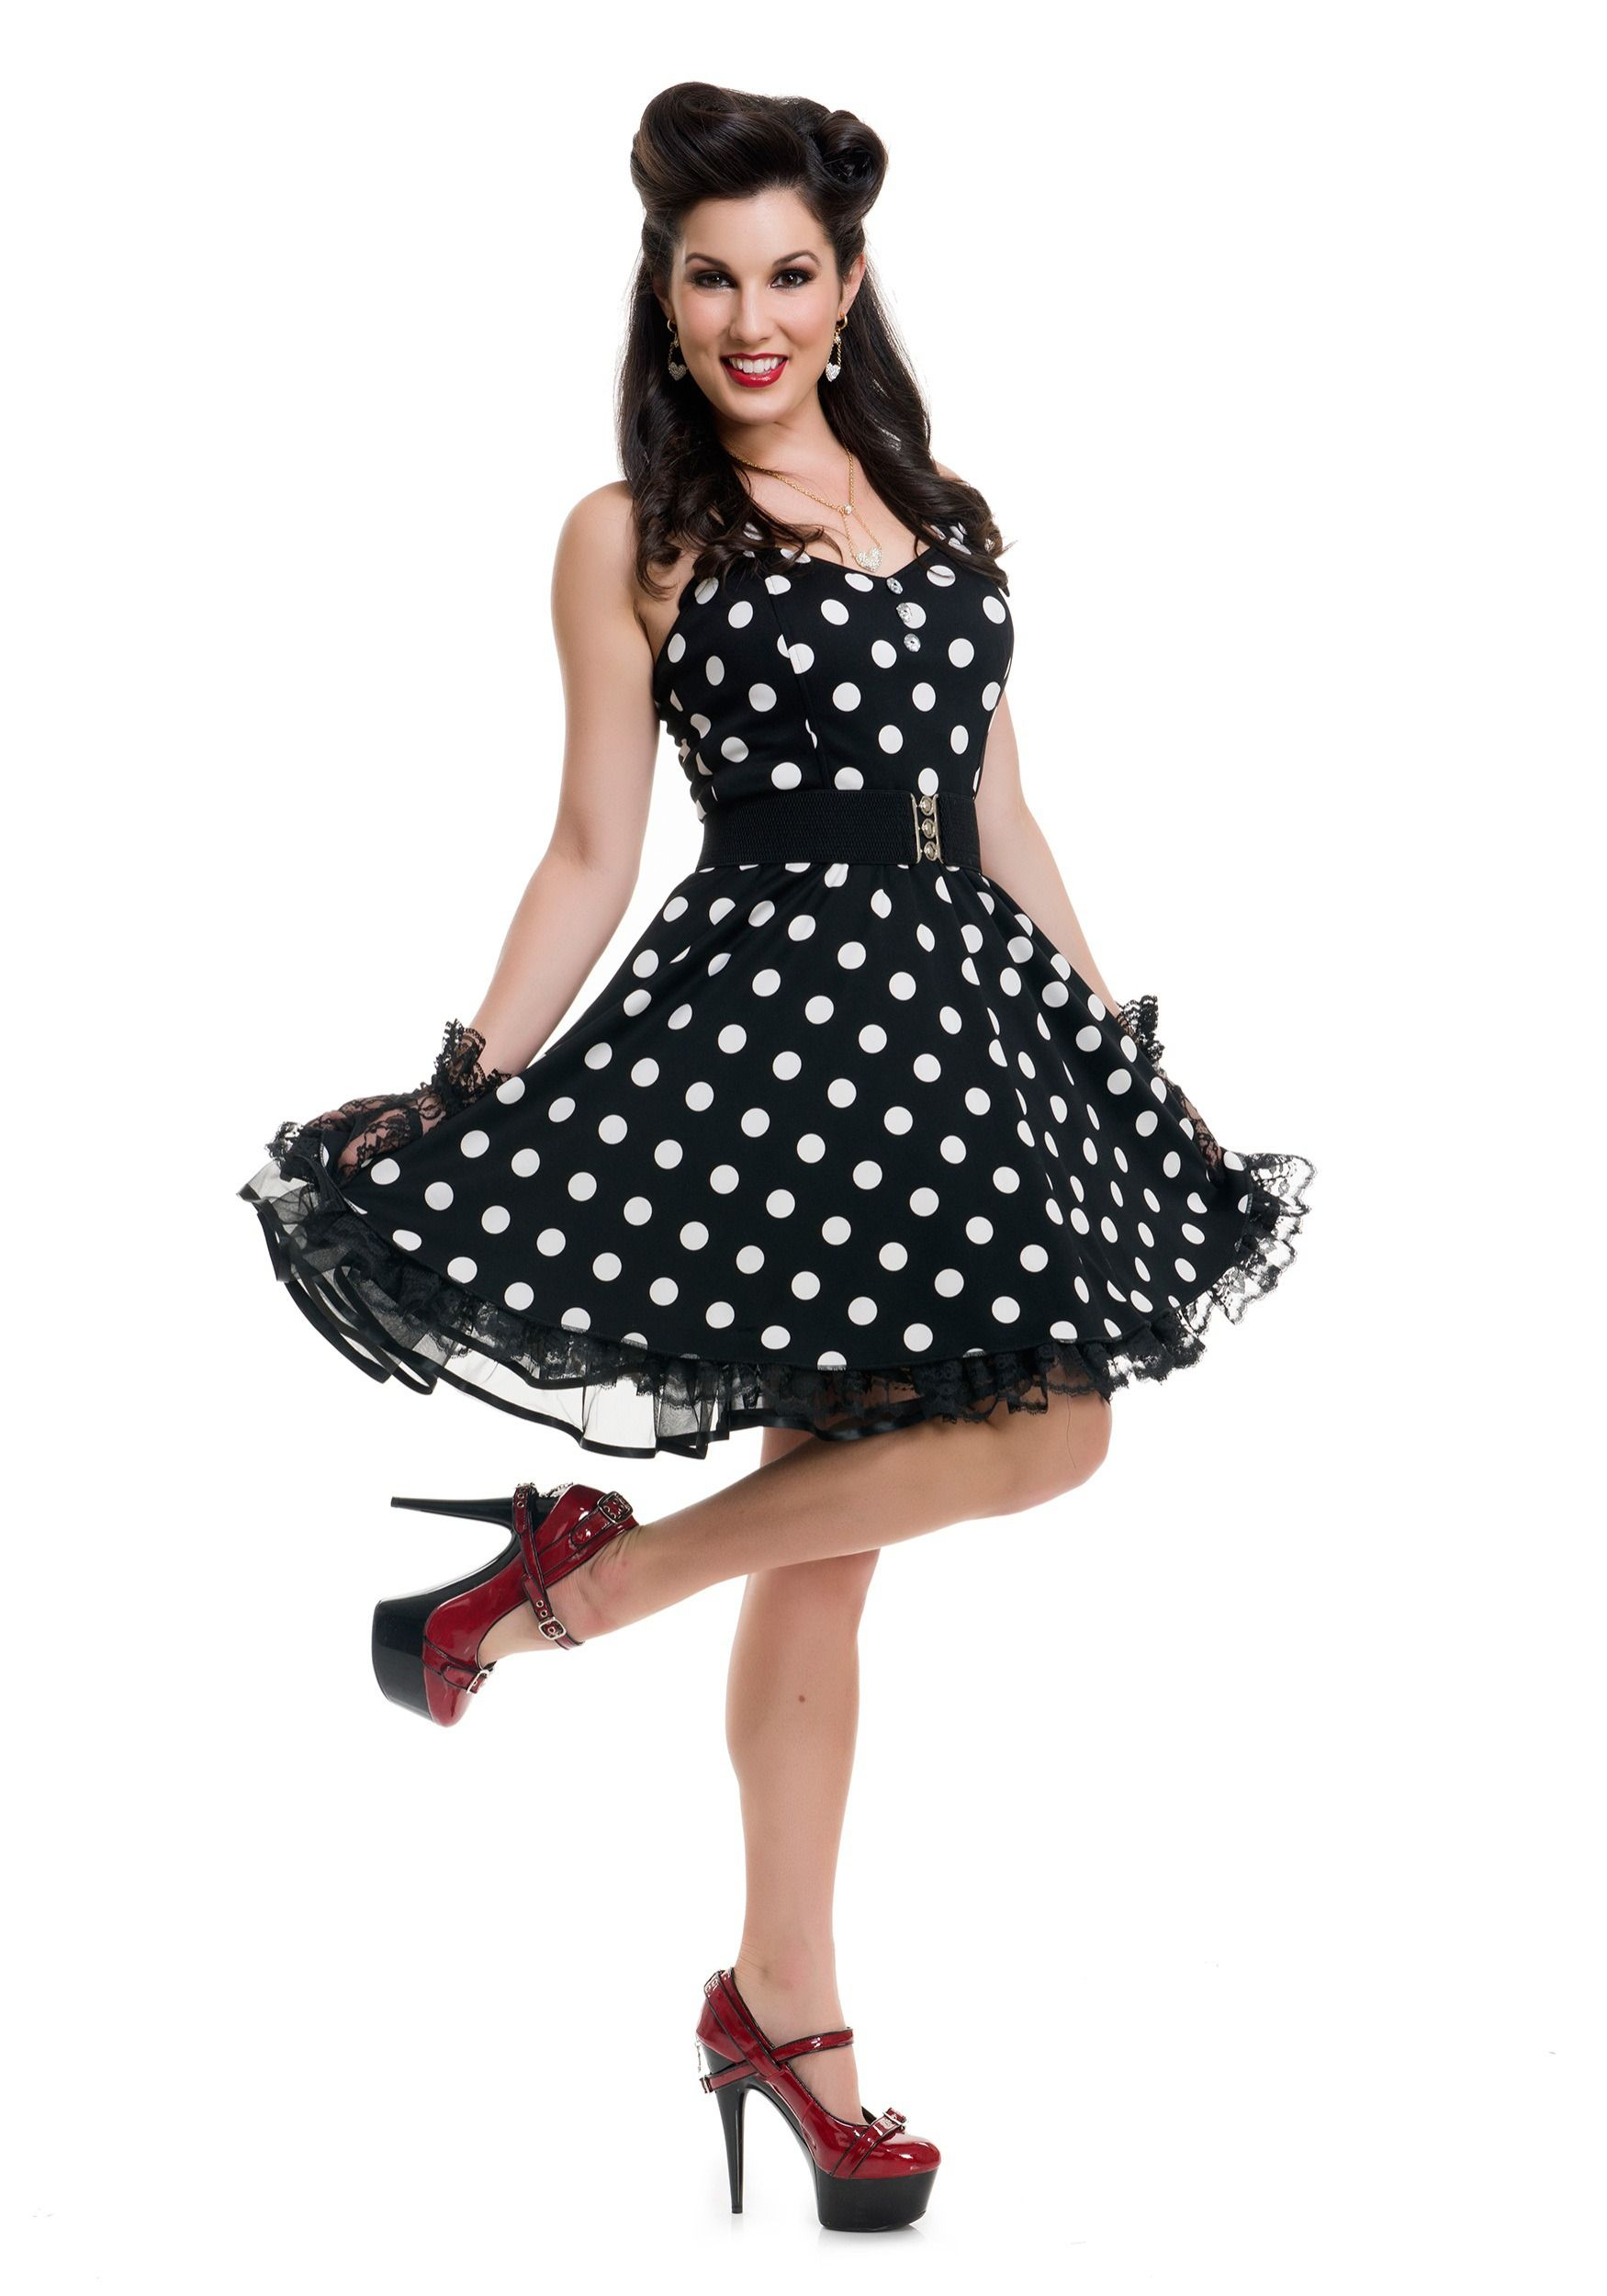 50s costumes - kids and adults 50s costumes | !940's theme in 2018